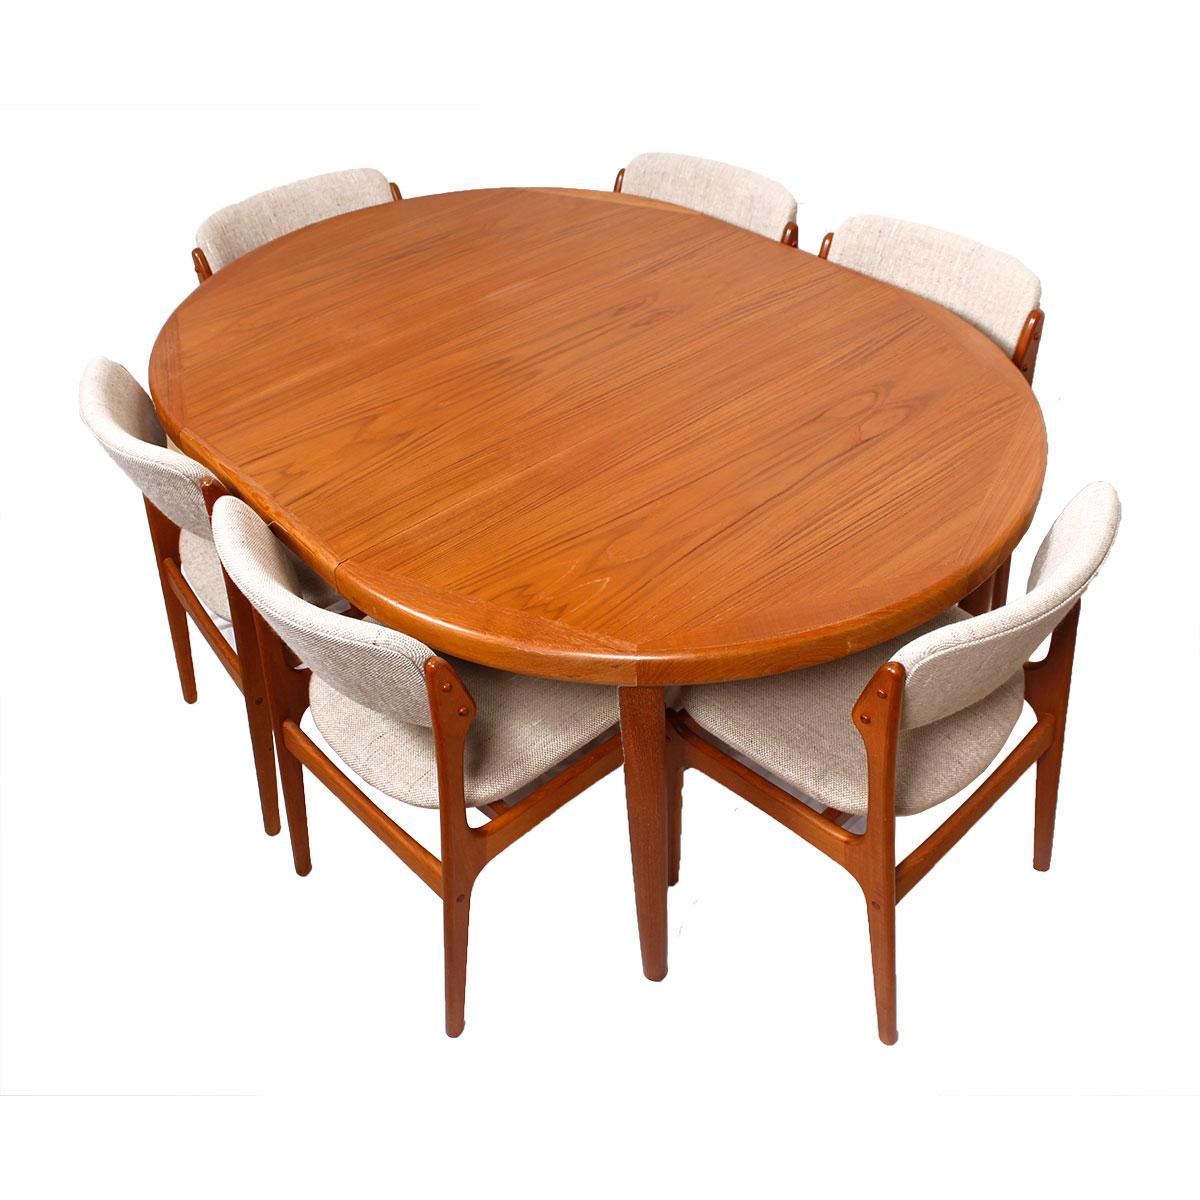 Danish Teak RoundOval Dining Table amp Pads Chairish : 2c8b06cc 87fc 4920 9032 db9a092560fbaspectfitampwidth640ampheight640 from www.chairish.com size 640 x 640 jpeg 42kB